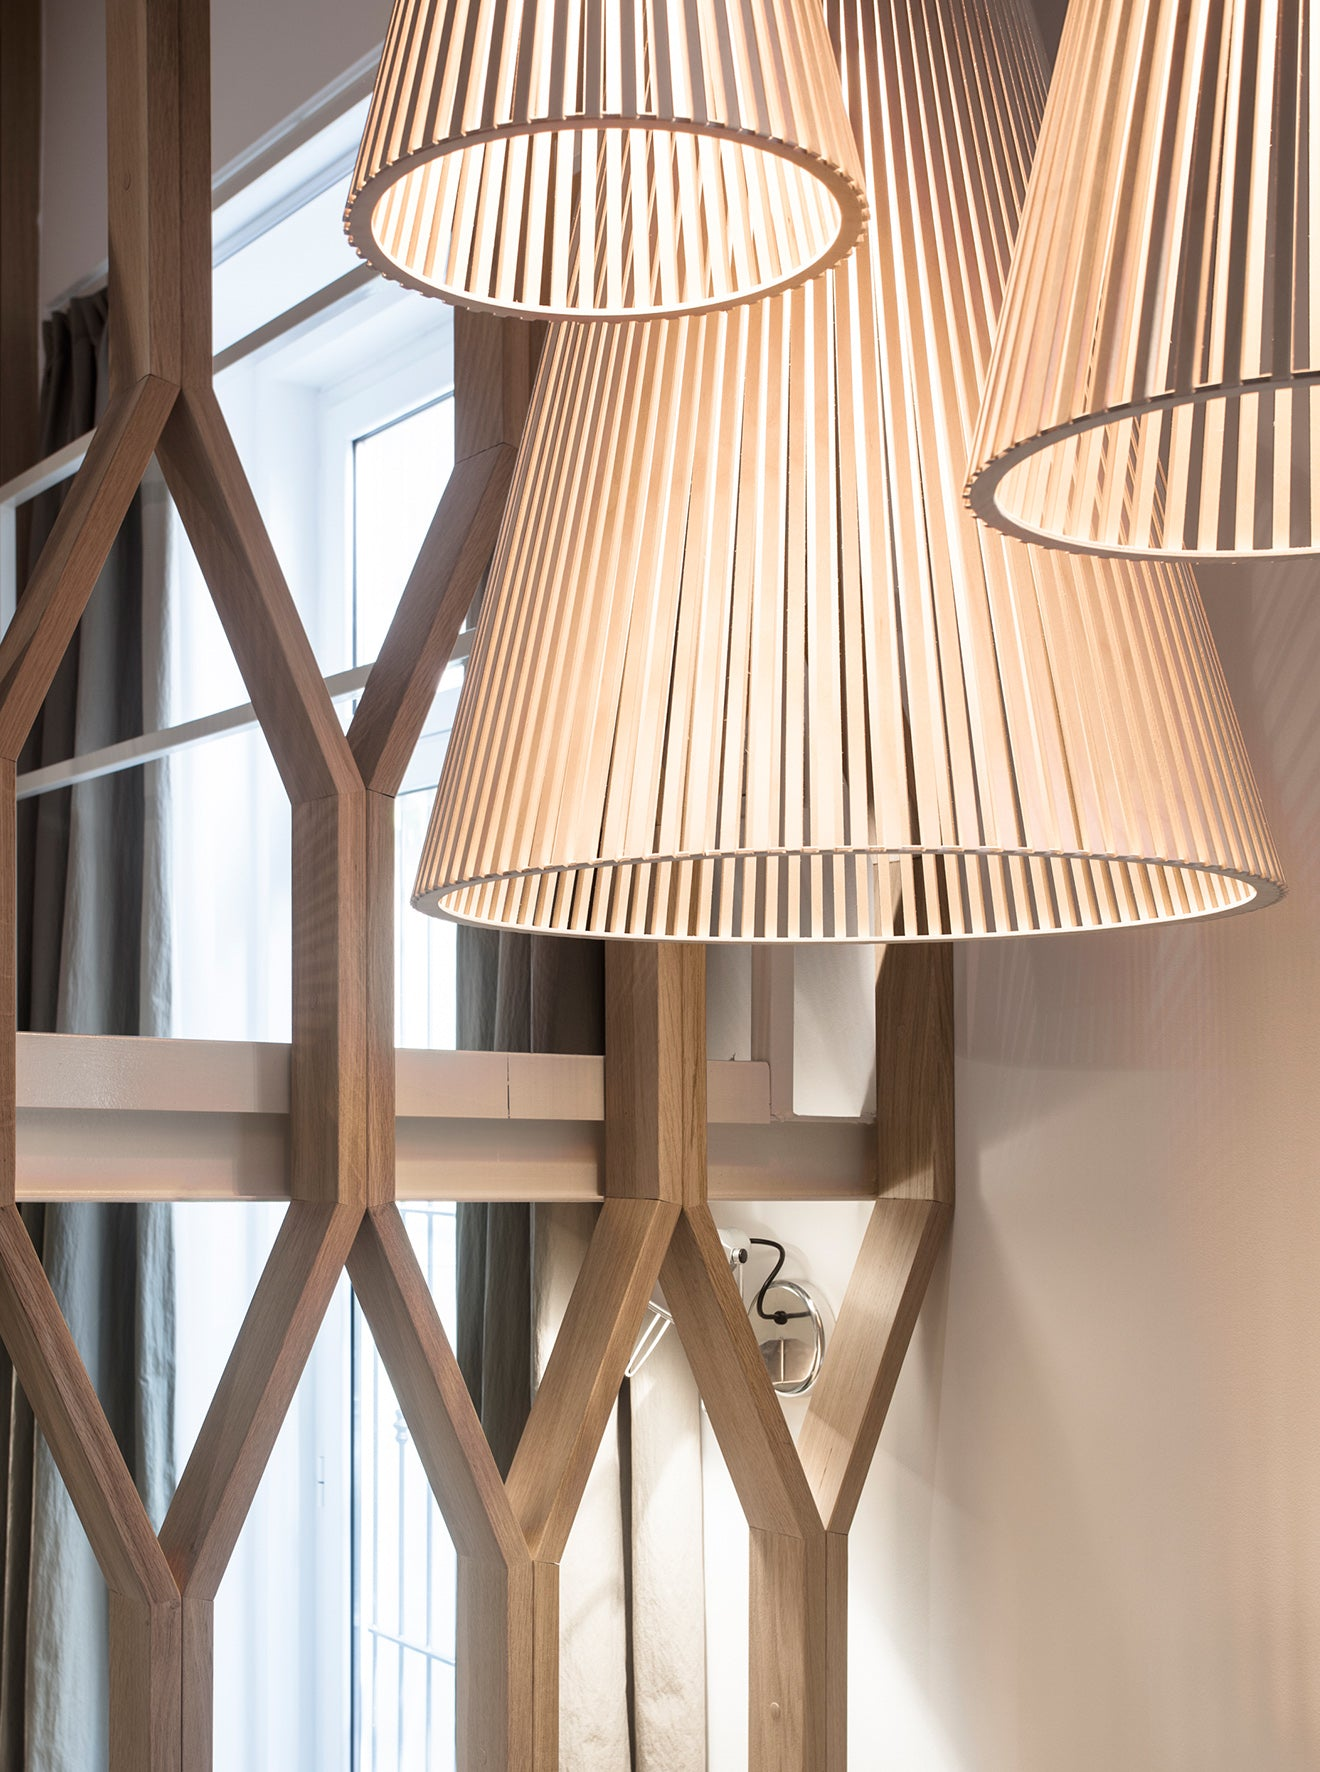 Luxury light fittings against wooden geometric screen